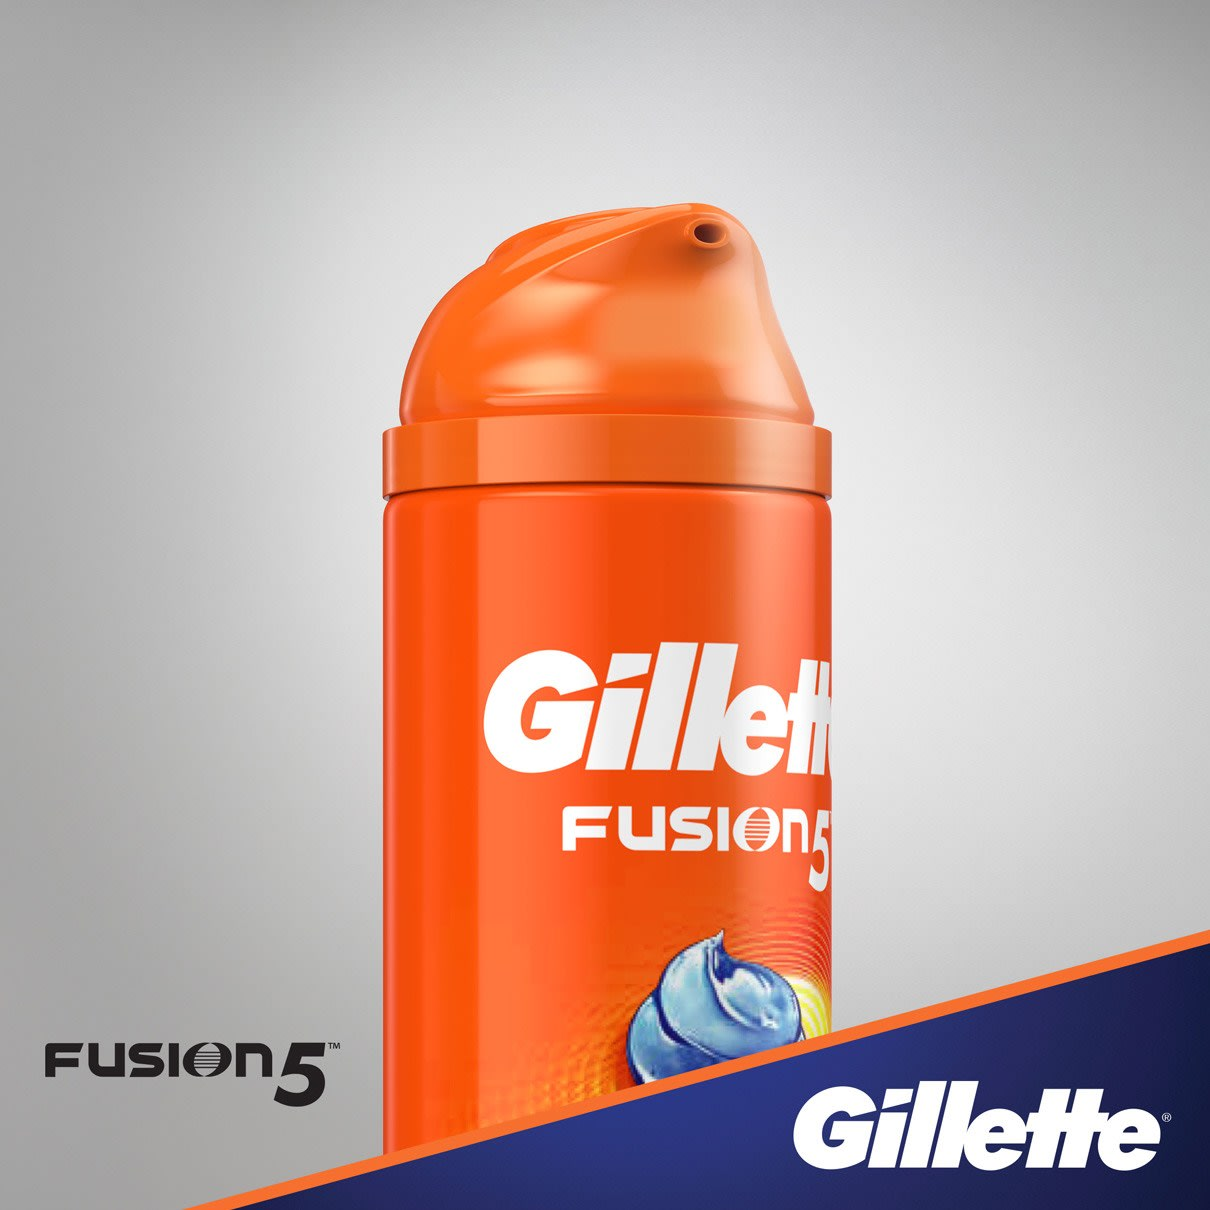 Gillette Fusion5 Ultra Sensitive Shave Gel